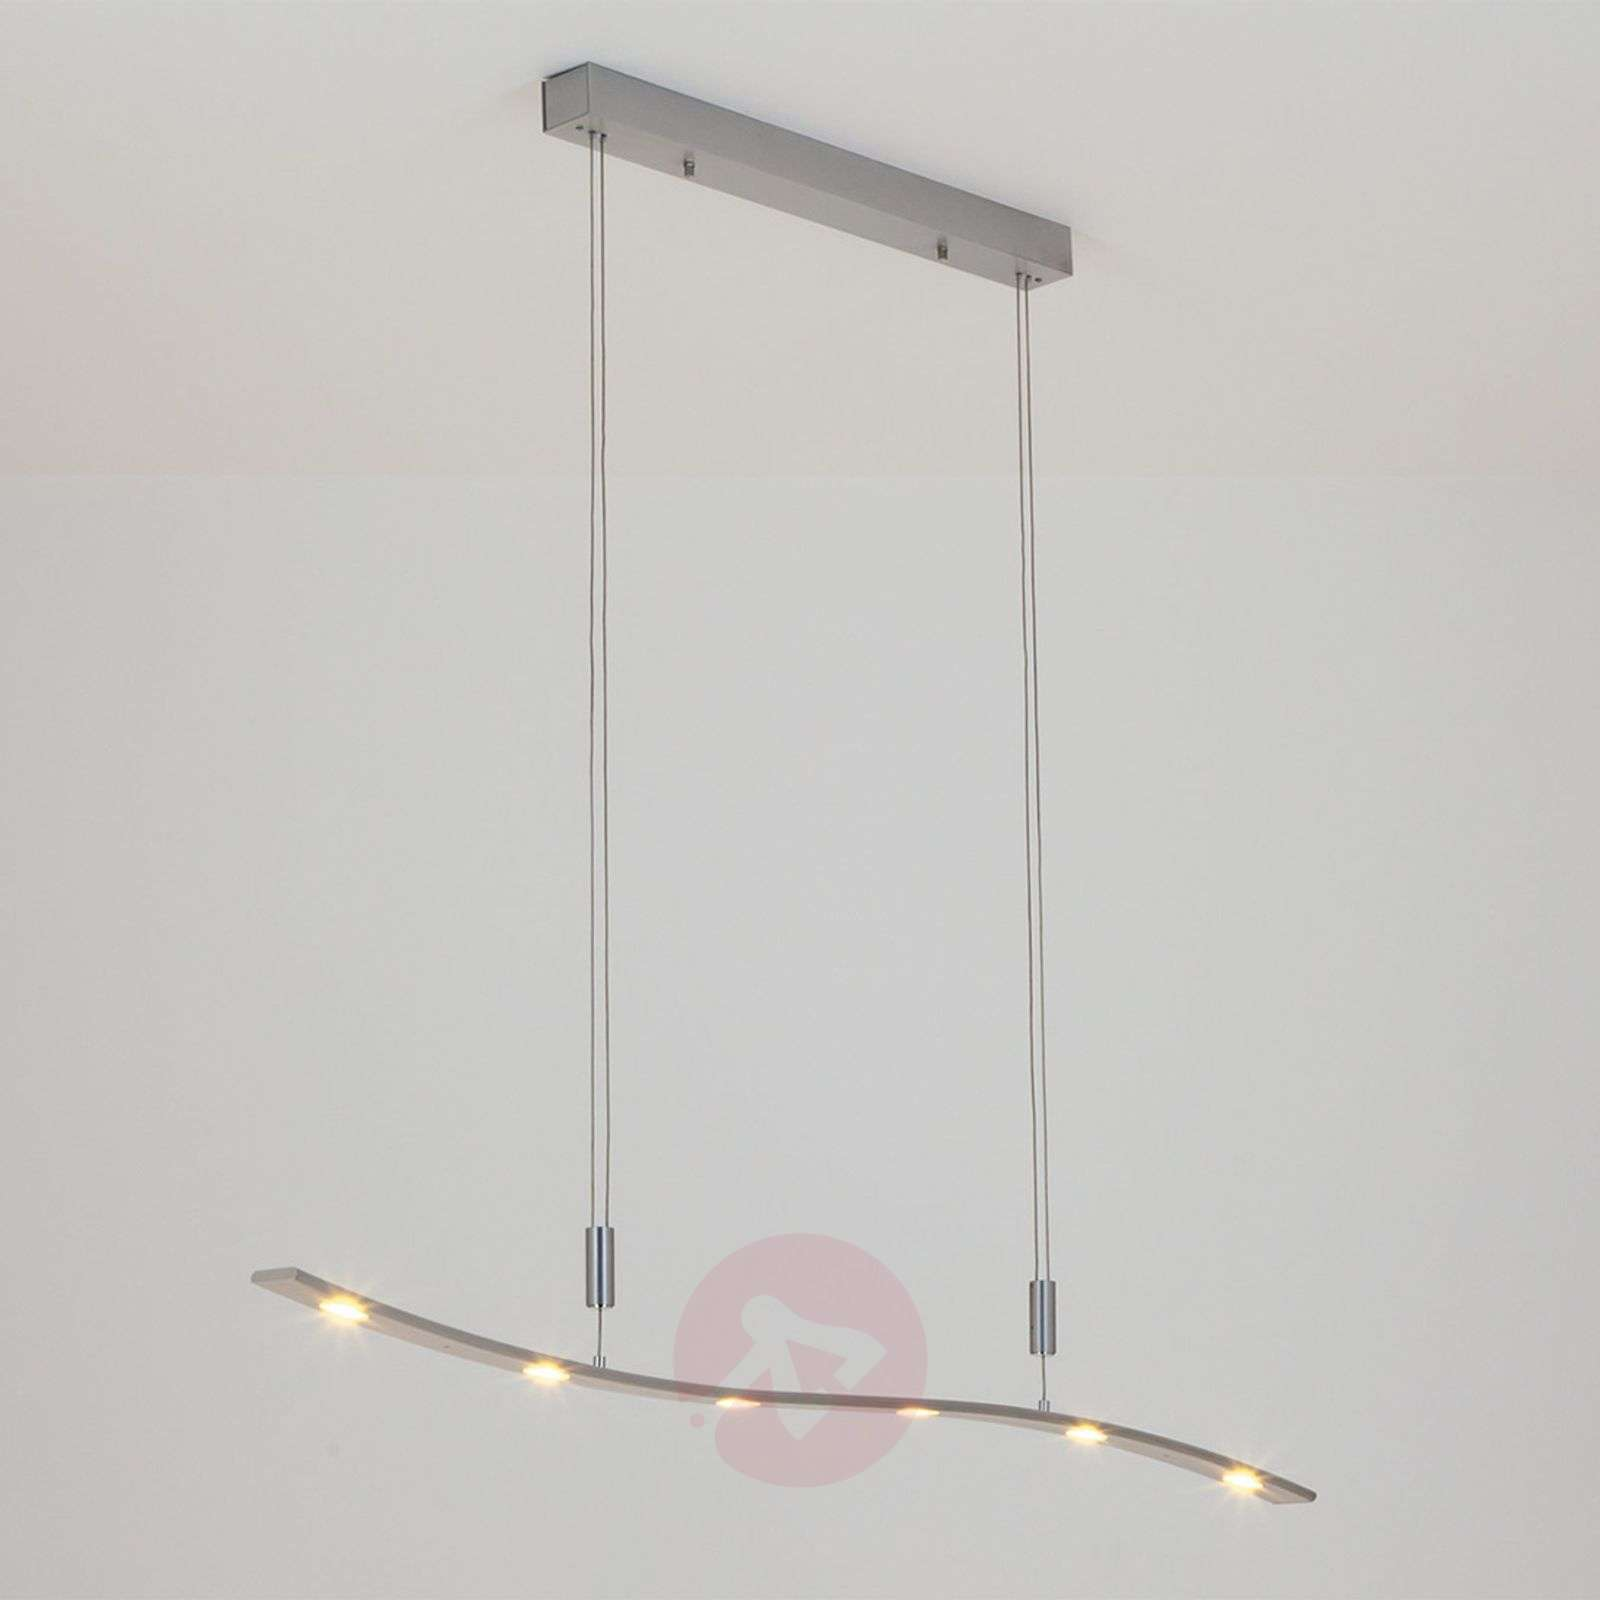 Height Adjustable Led Pendant Light Drop: Xalu LED Pendant Lamp, Height-Adjustable 120 Cm